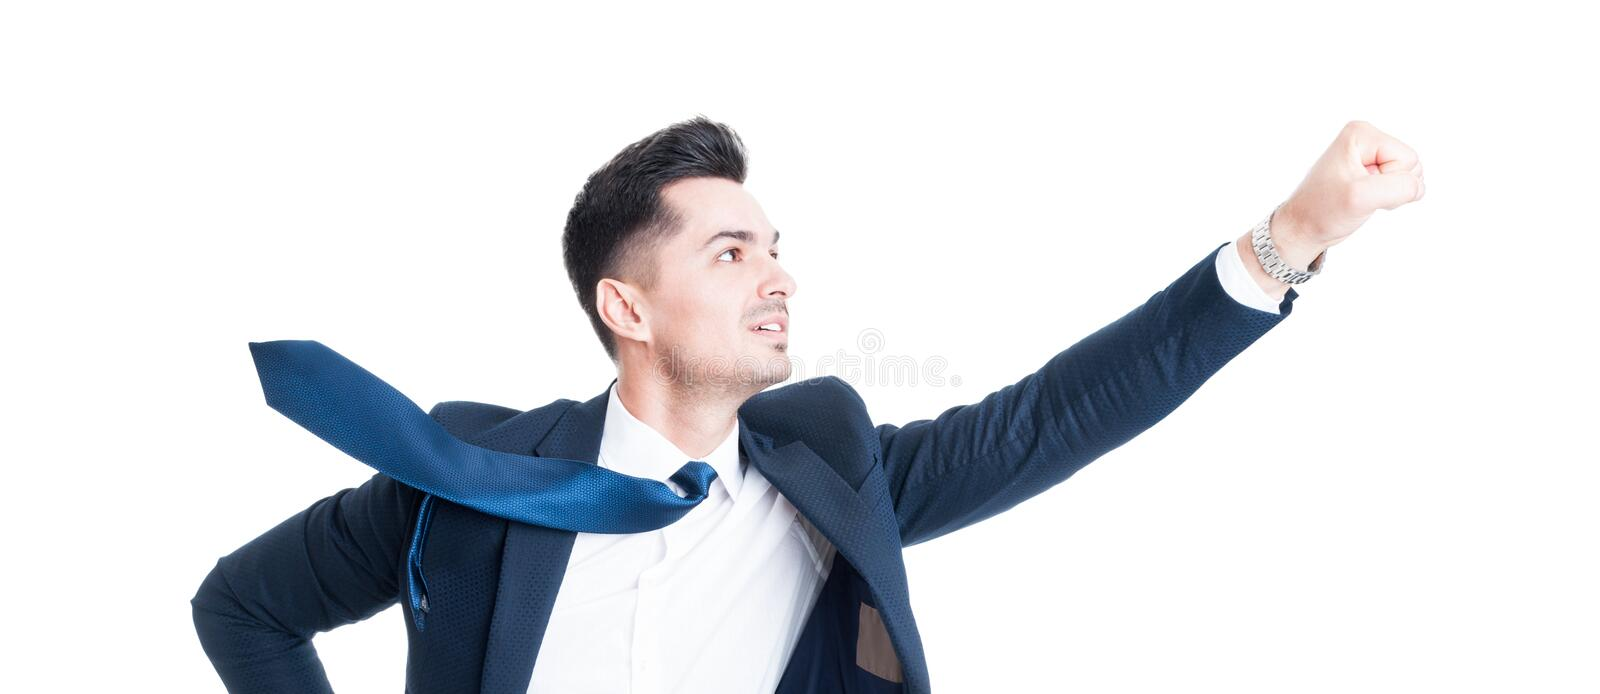 Business man flying gesture with necktie blowing stock images